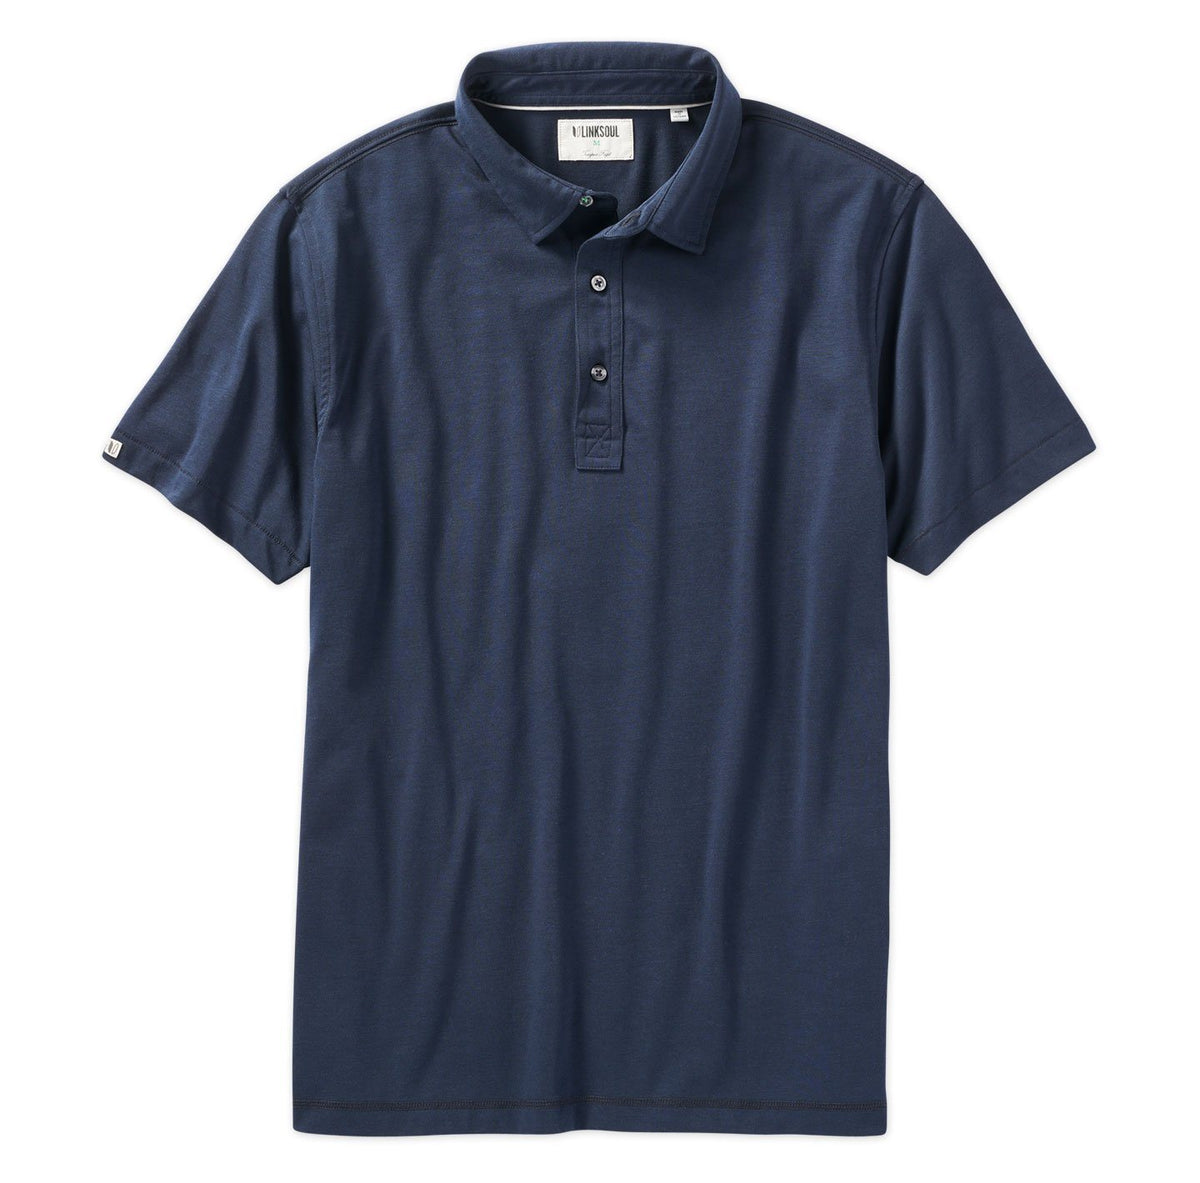 Pocket-Free Coast Highway Classic Knit Polo